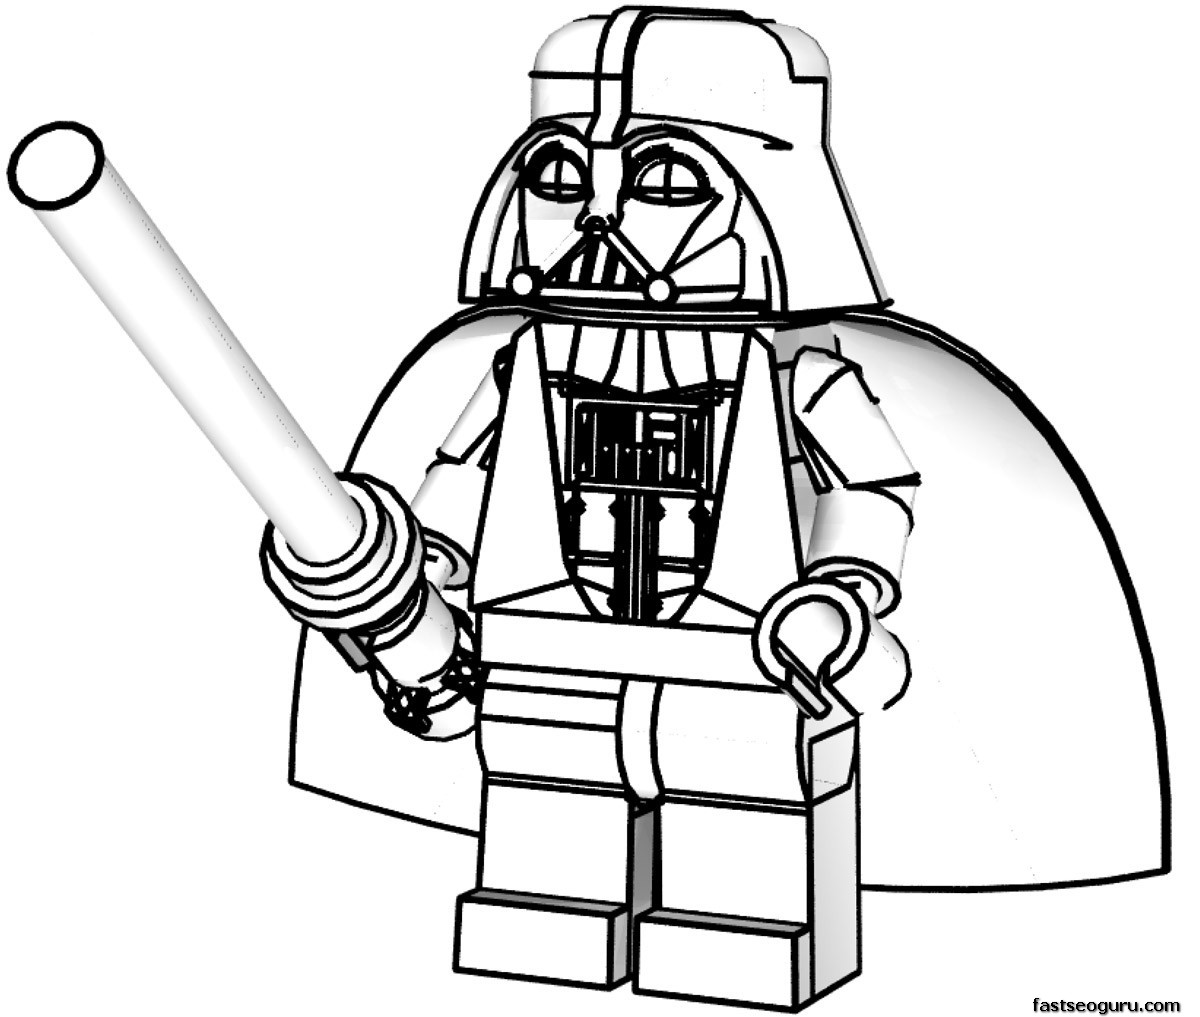 lego star wars printable coloring pages lego star wars coloring pages best coloring pages for kids coloring printable wars lego star pages